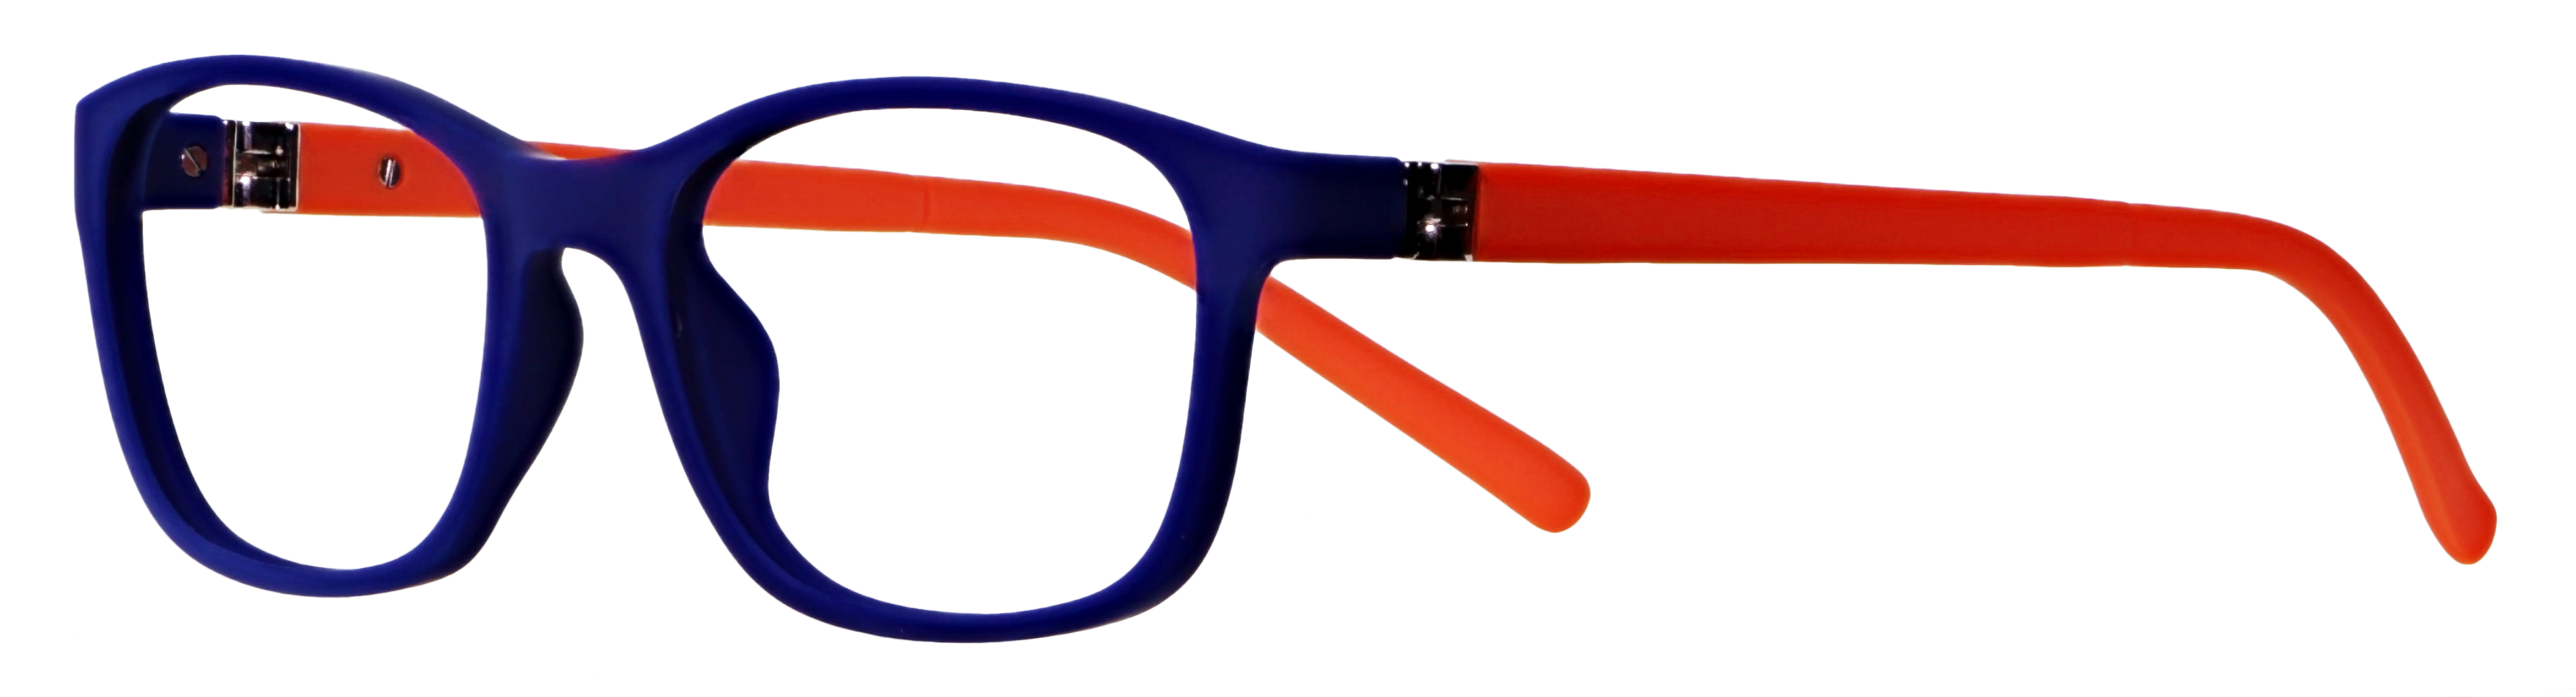 abele optik Kinderbrille 139991